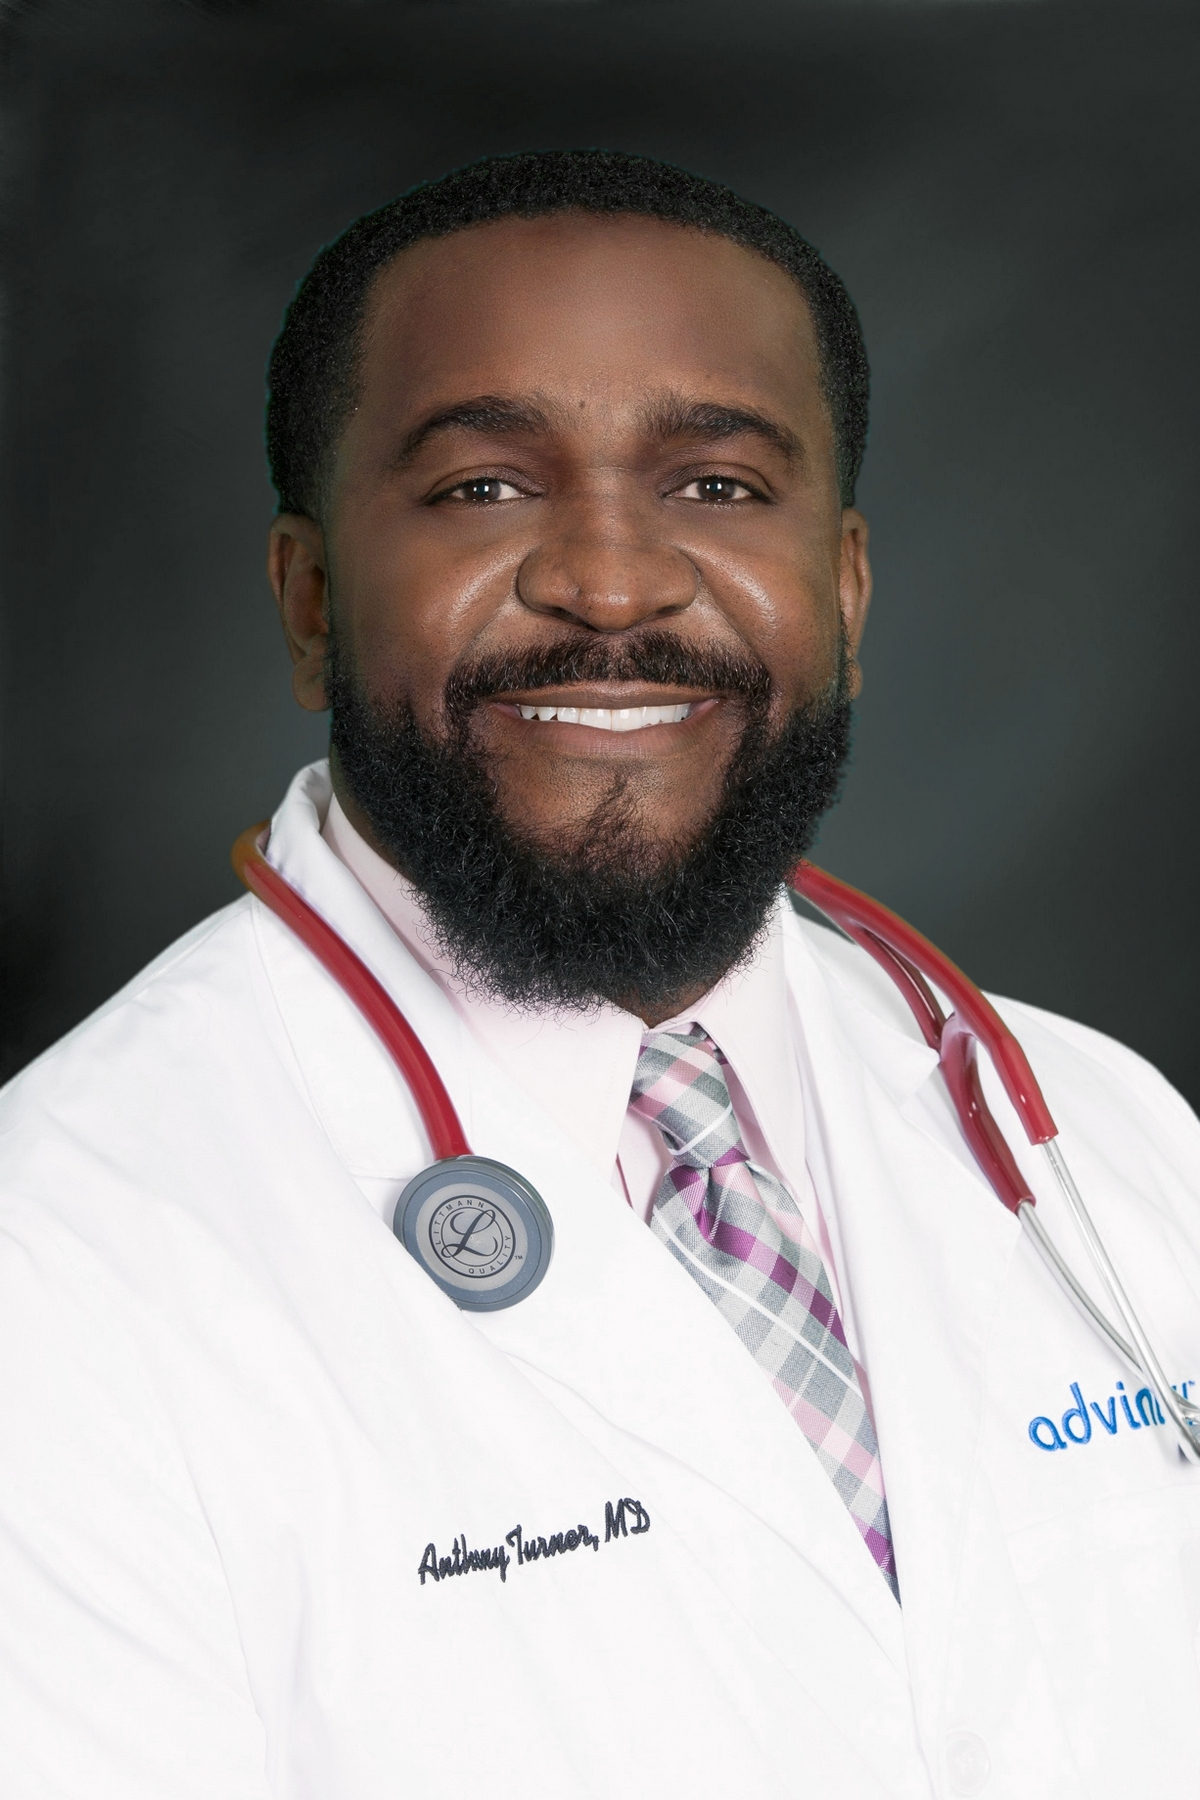 Dr. Anthony Turner Headshot